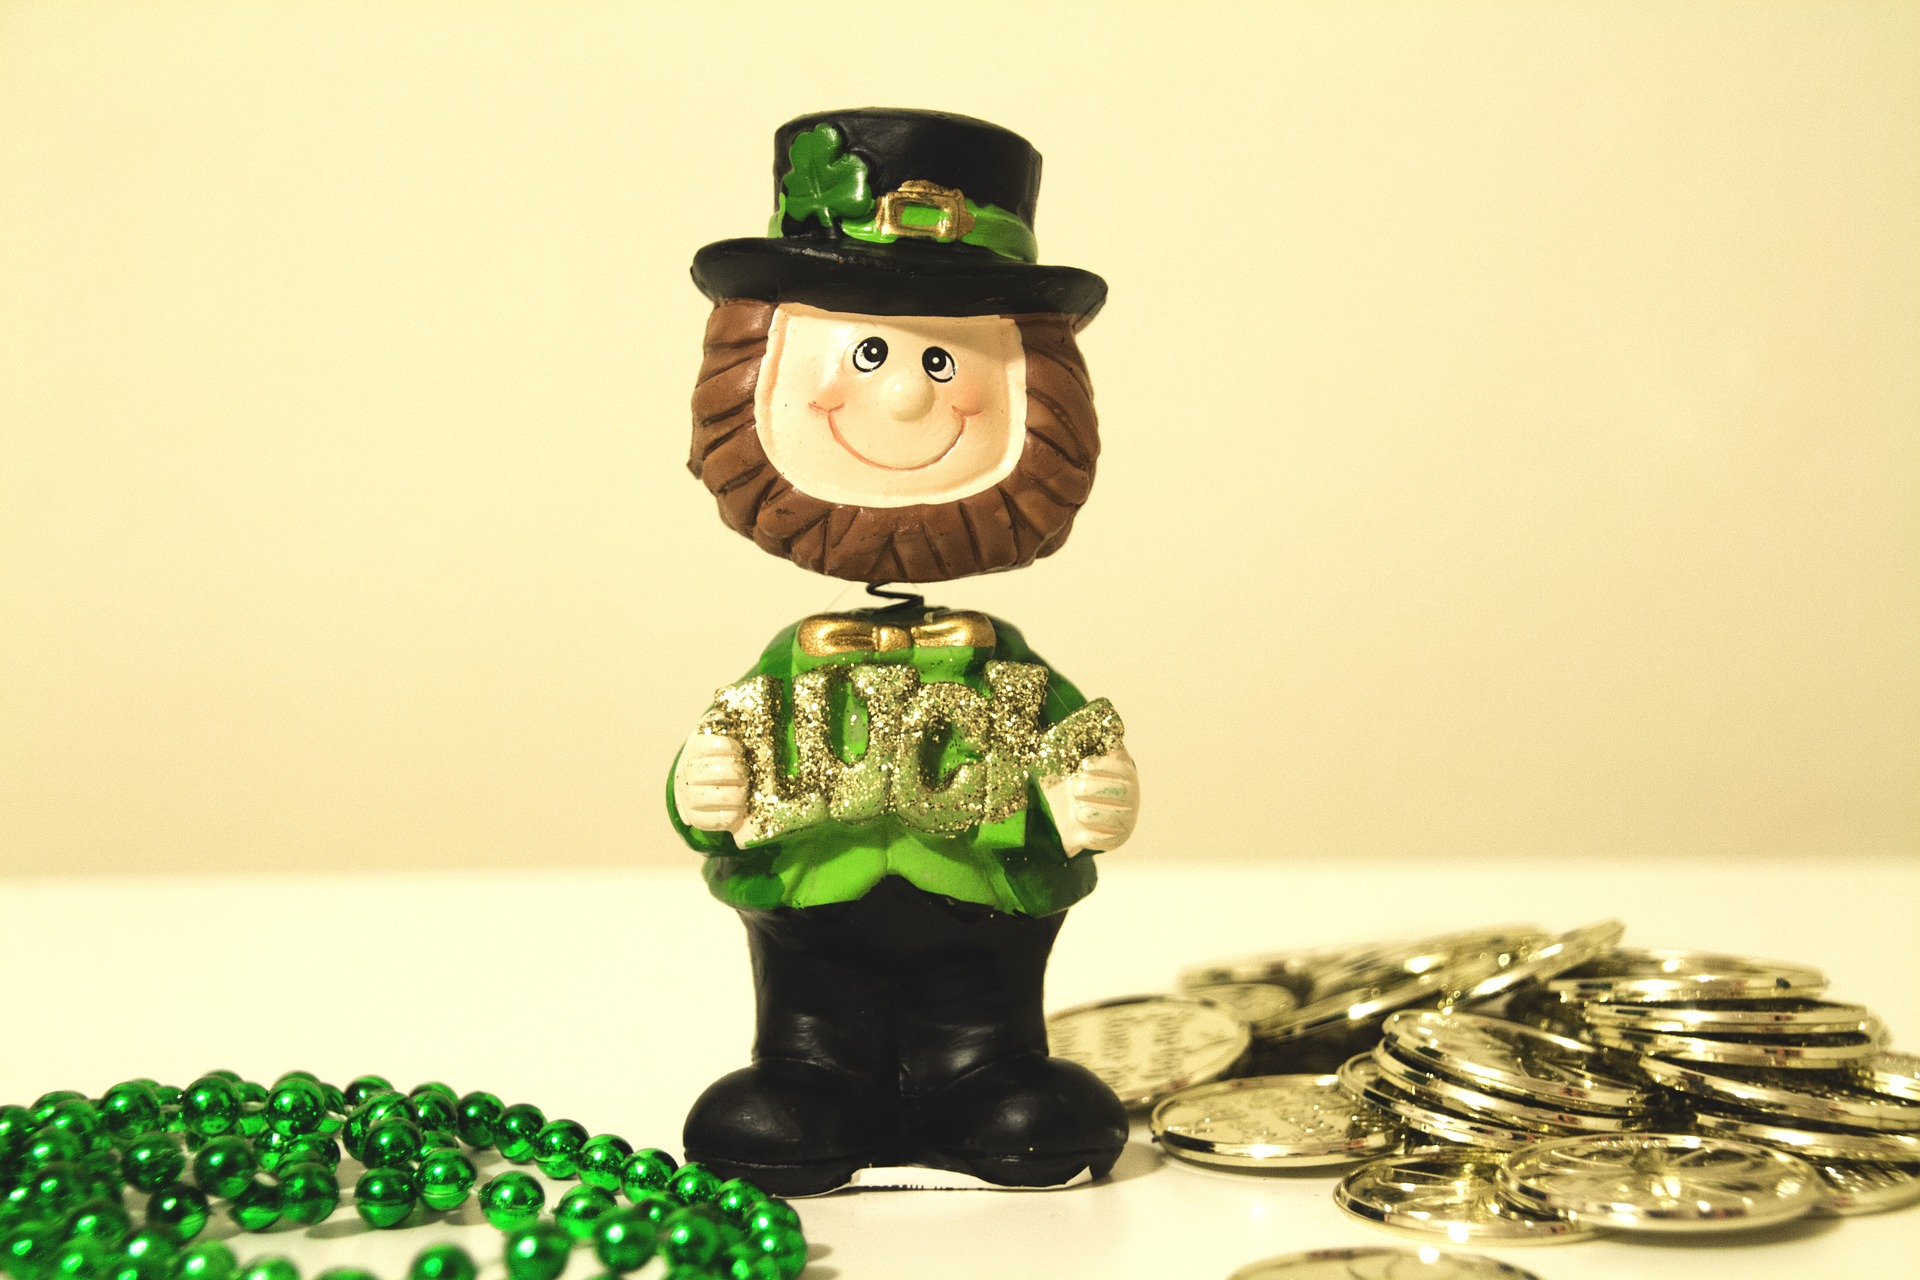 Leprechauns in Film and Fiction